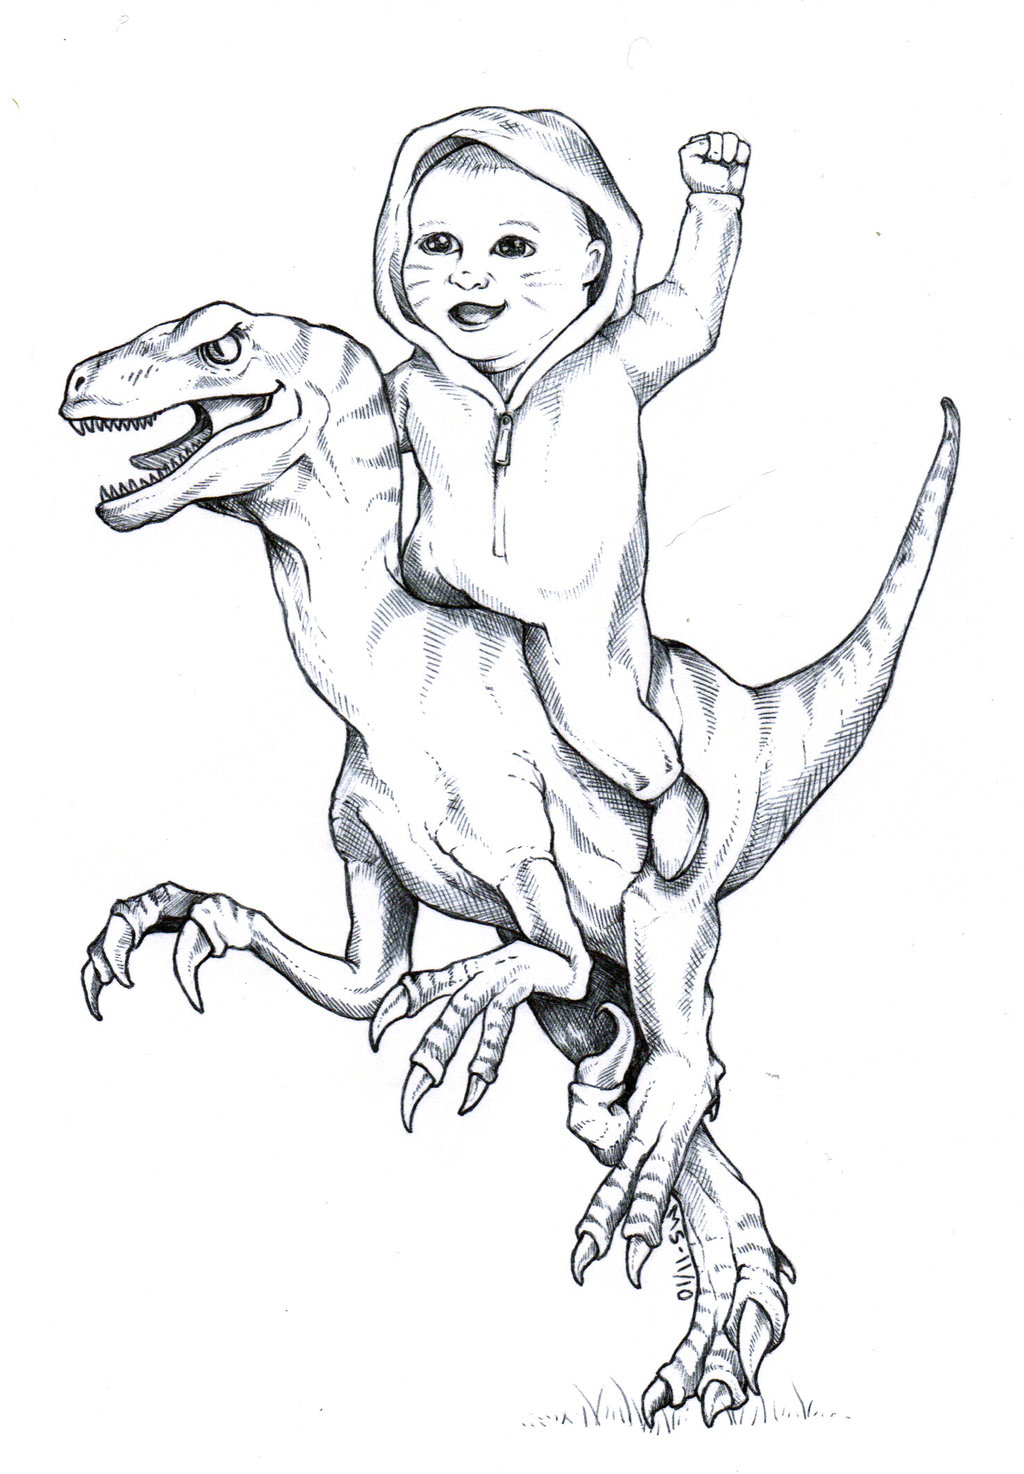 baby_riding_velociraptor_by_blackmagdalena-d6tqq4k